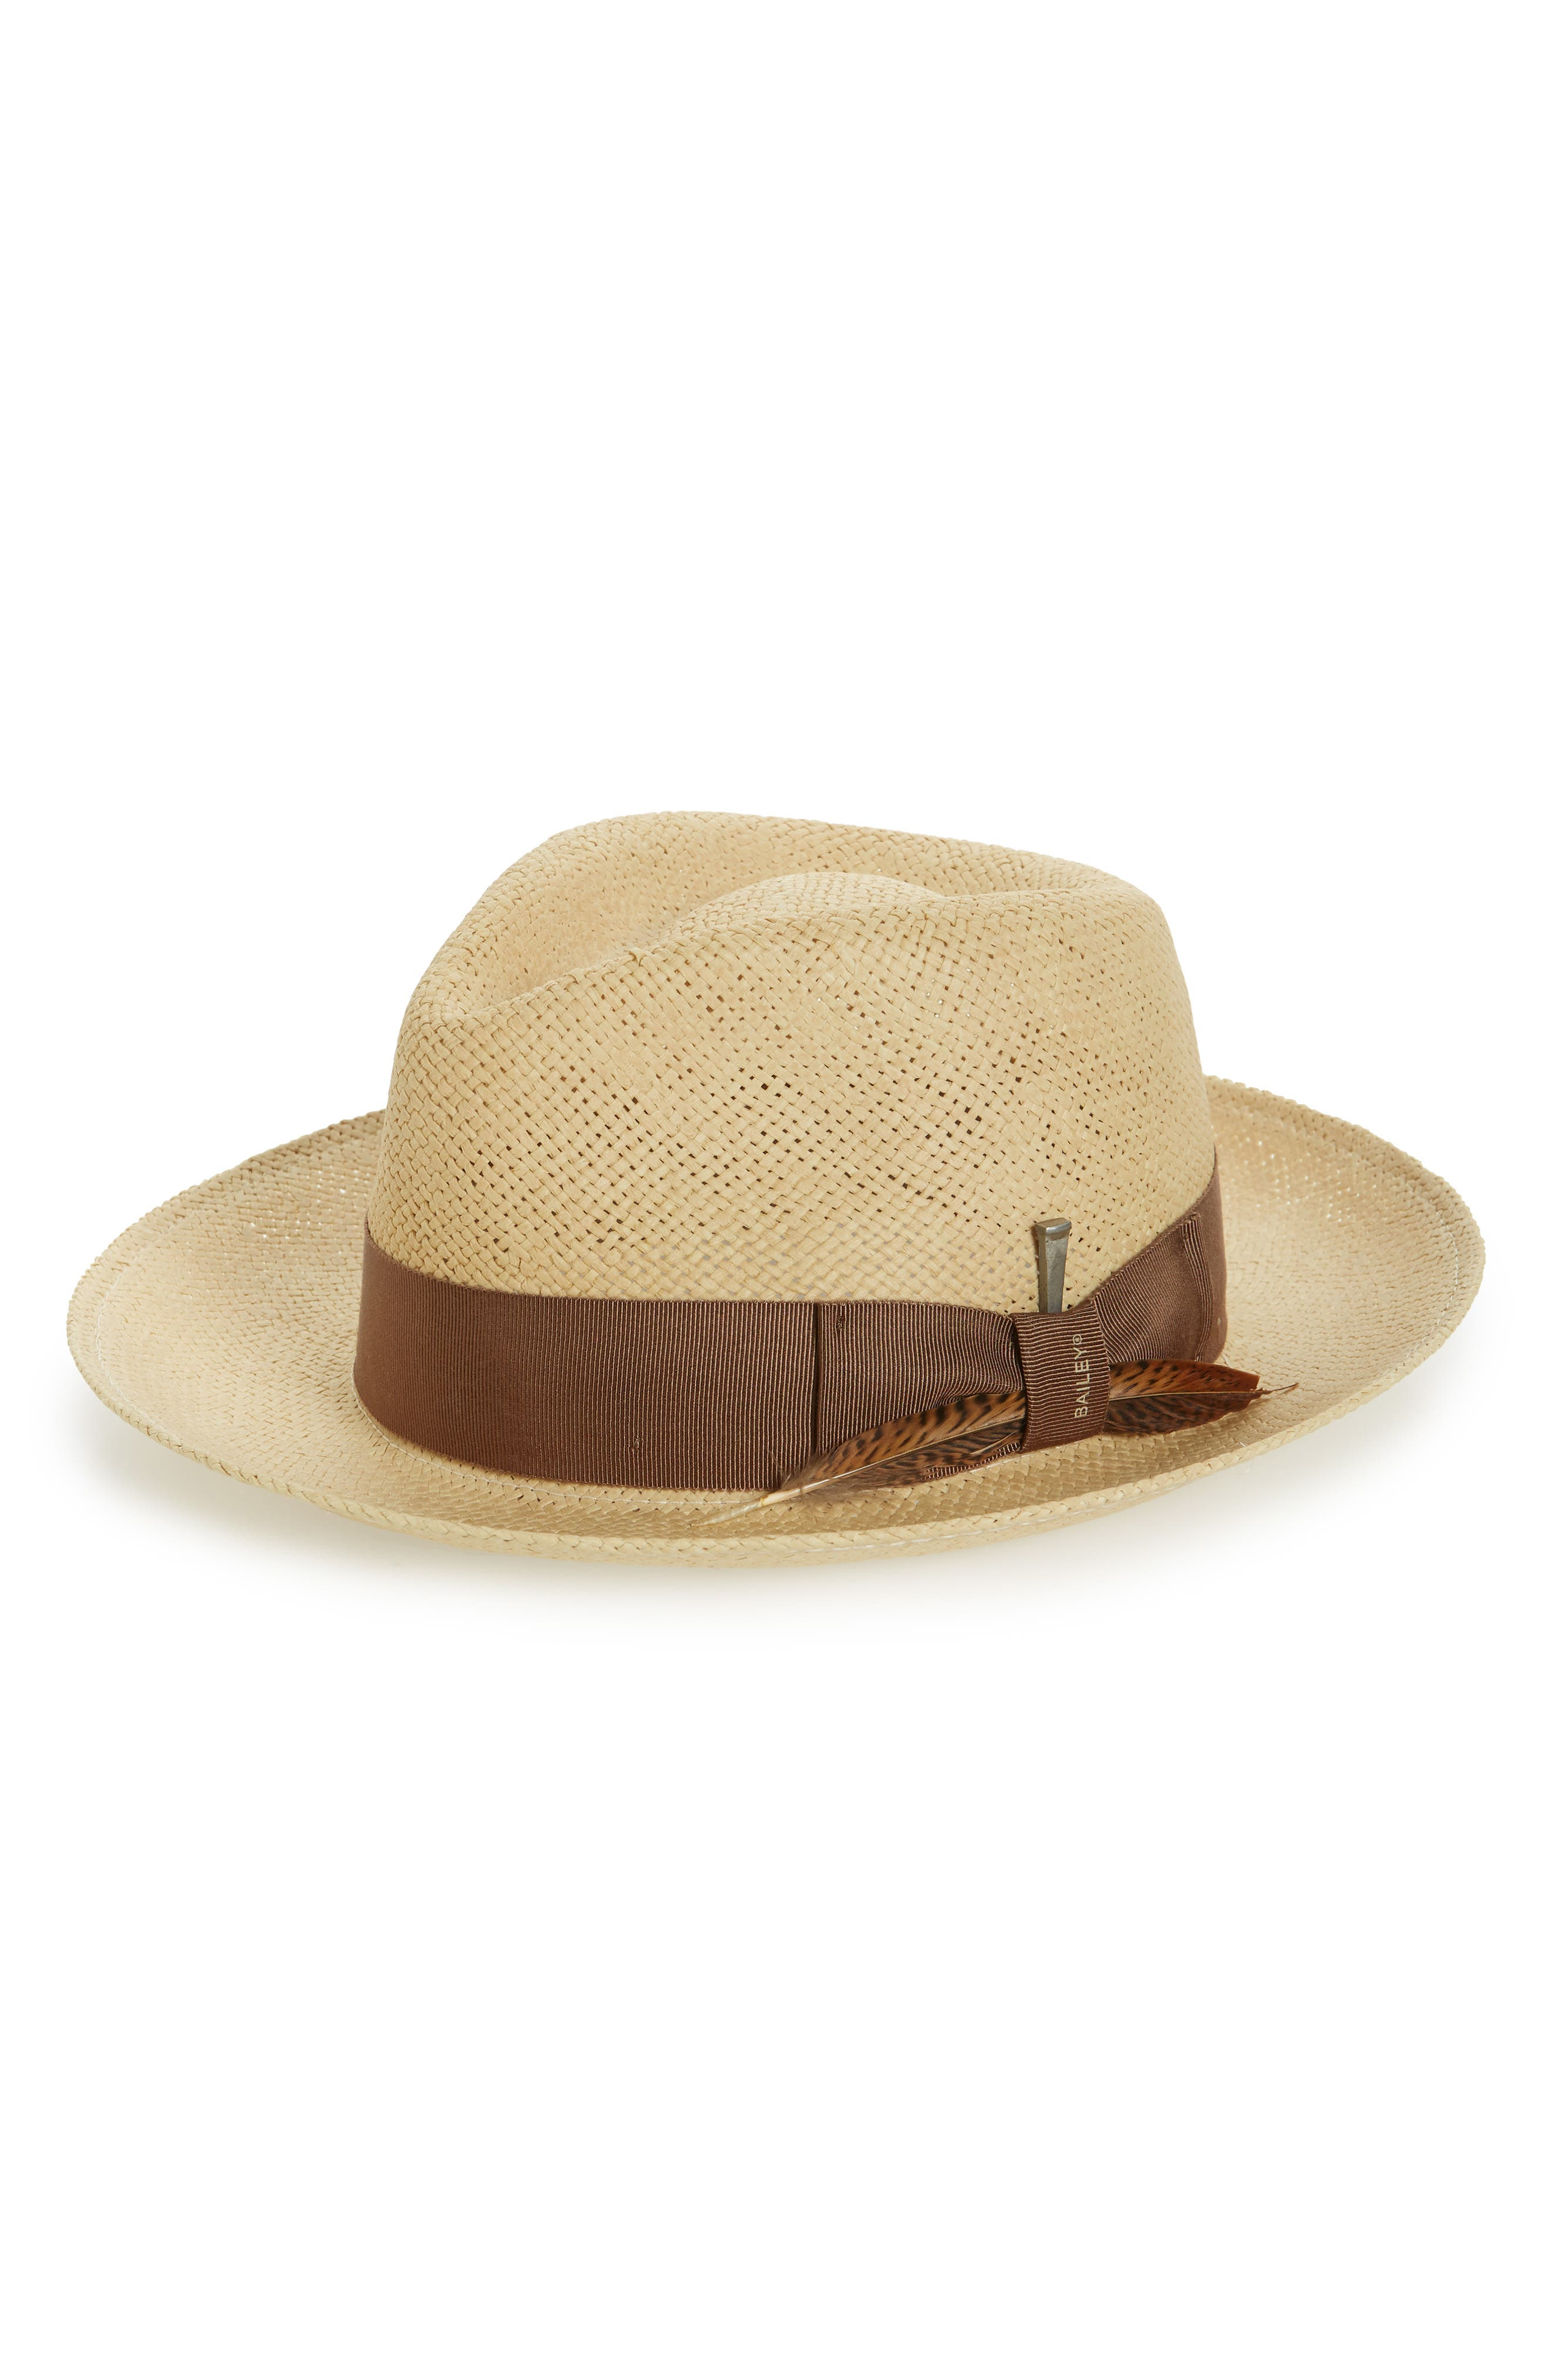 Bailey Outen Straw Fedora - Beige